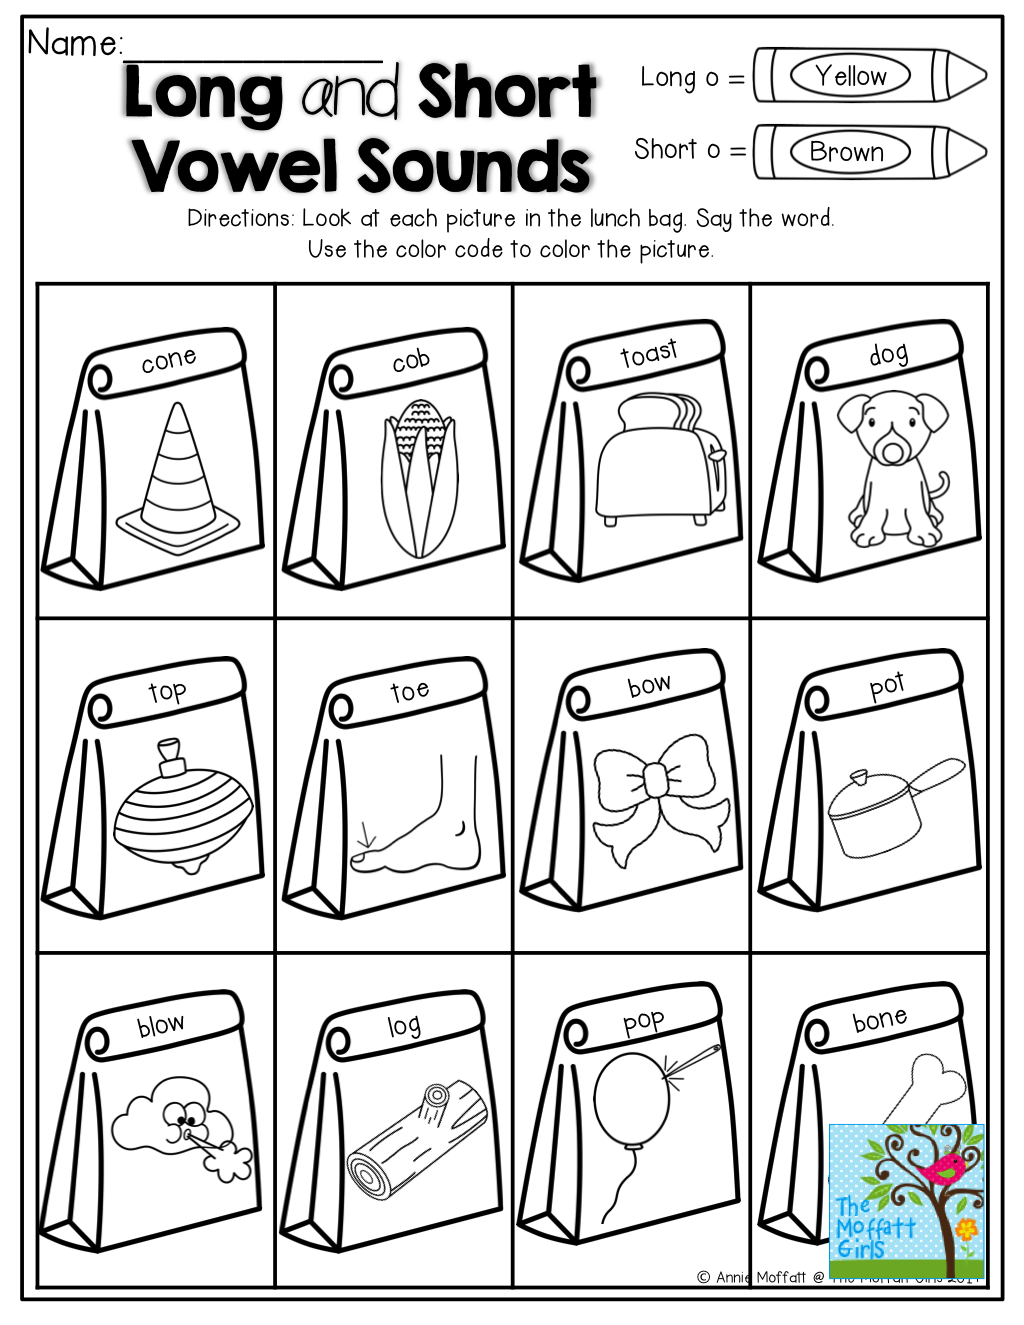 Long and Short Vowel Sounds - TONS of Back to School printables ...